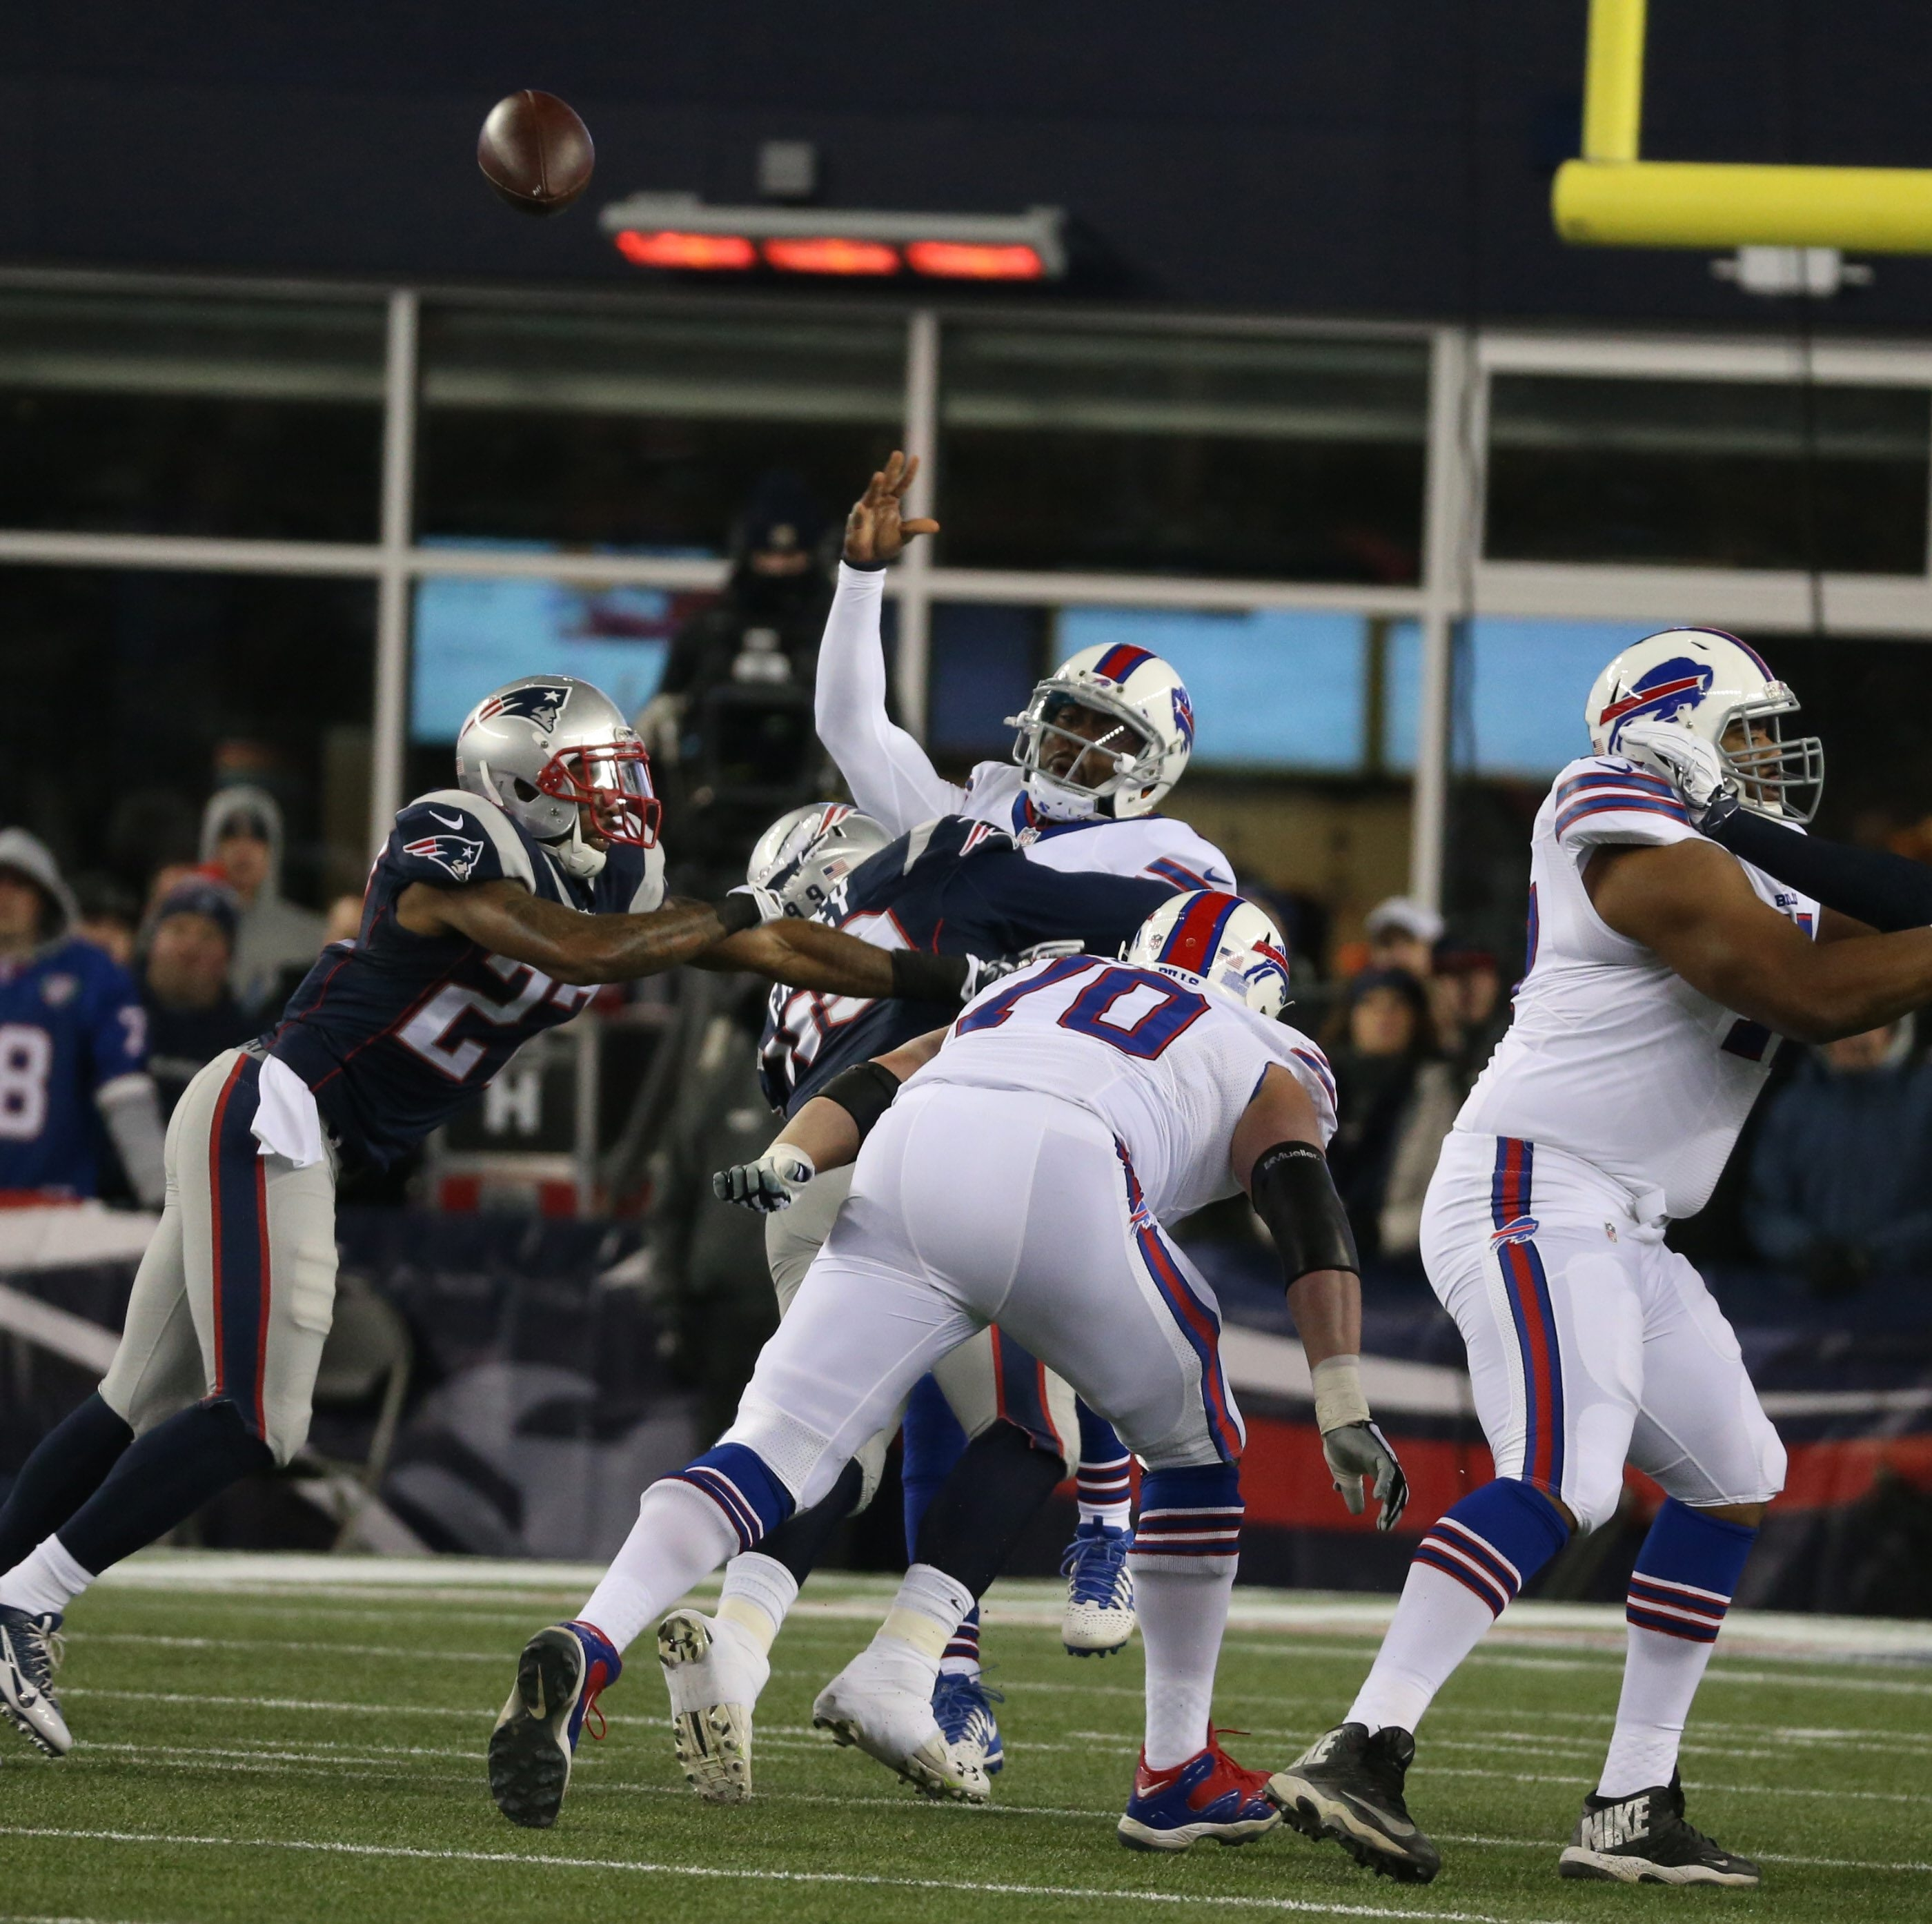 Bills quarterback Tyrod Taylor throws under pressure from the Patriots in the first quarter Monday night in Foxborough, Mass.